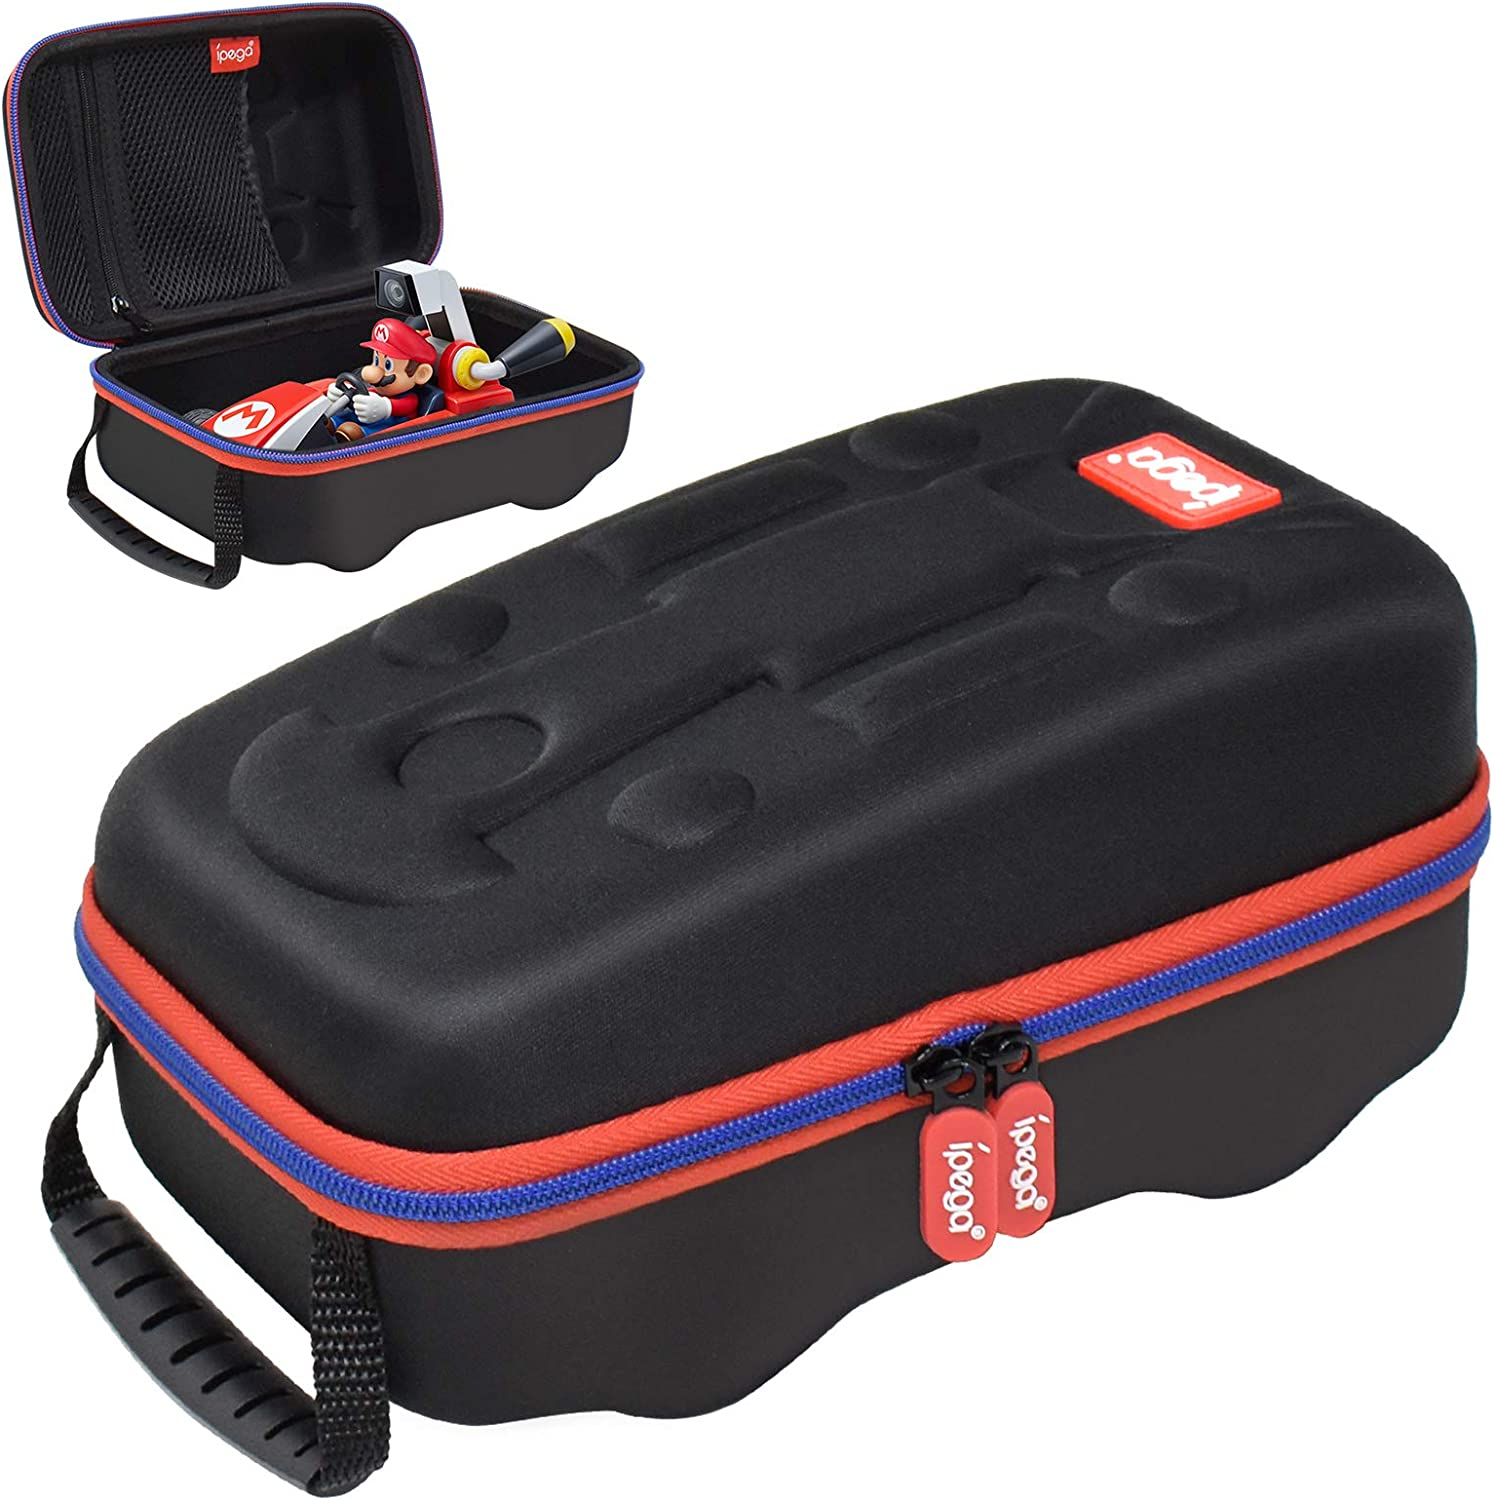 Carrying Case for Mario Kart Live: Home Circuit, Portable Protective Hard Shell Travel Bag Case for Nintendo Switch Mario Kart Live - Black